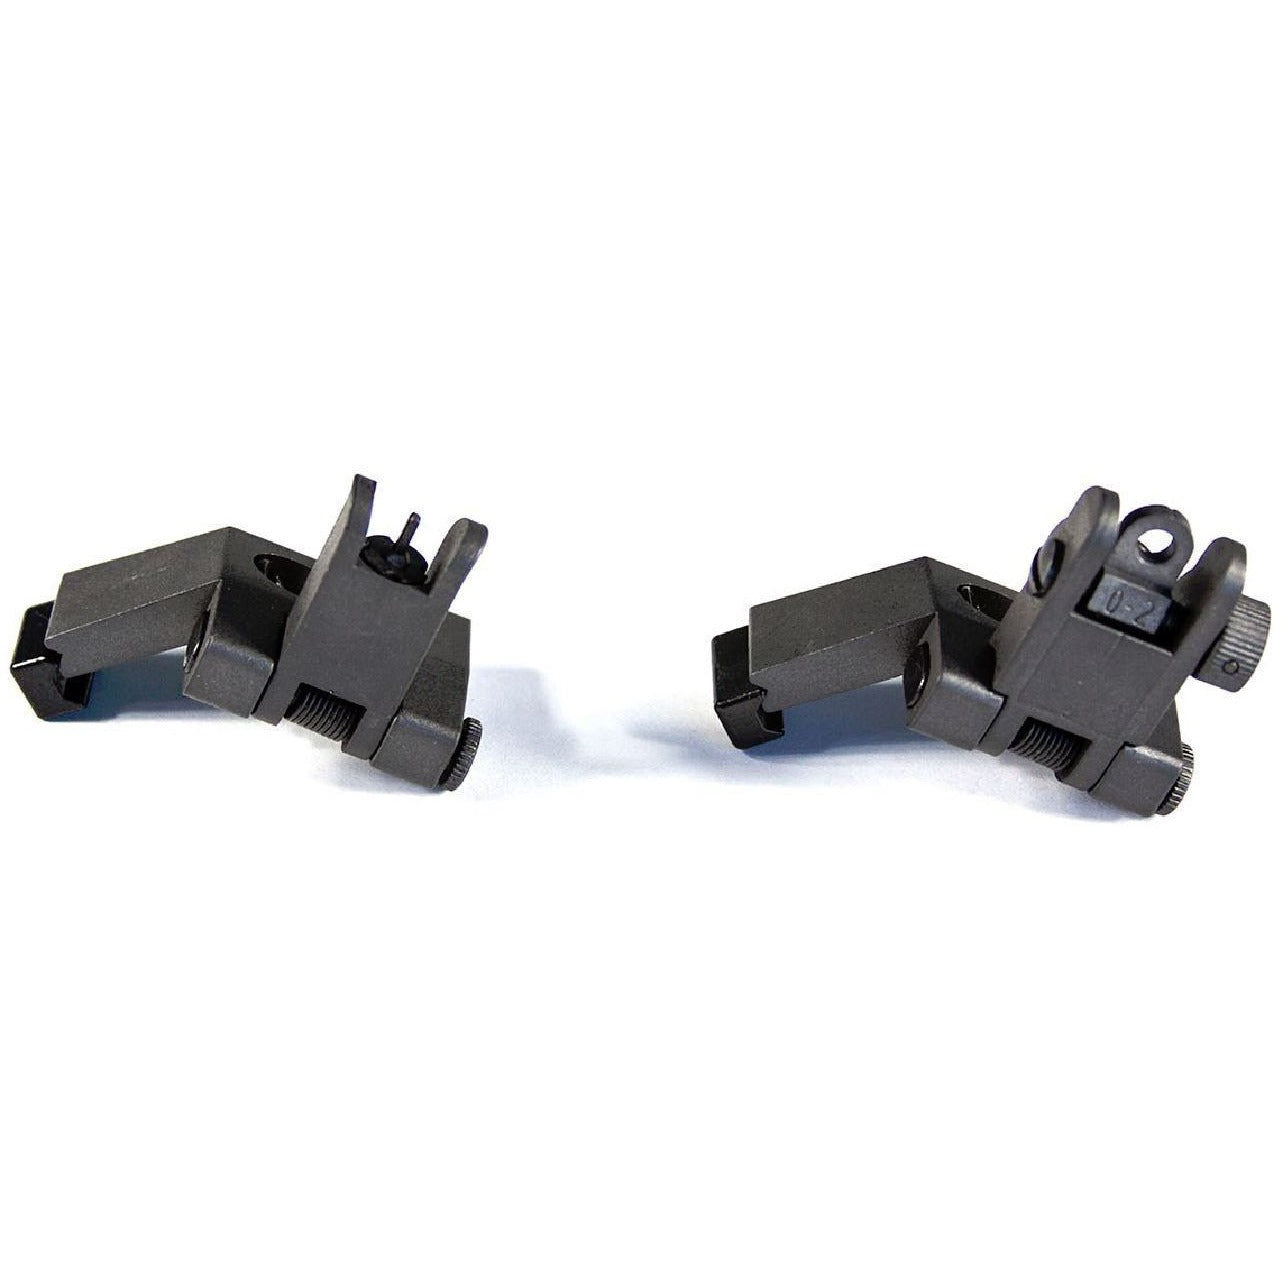 【Pro Series】45 Degree Offset Flip Up Sight Kit - Black